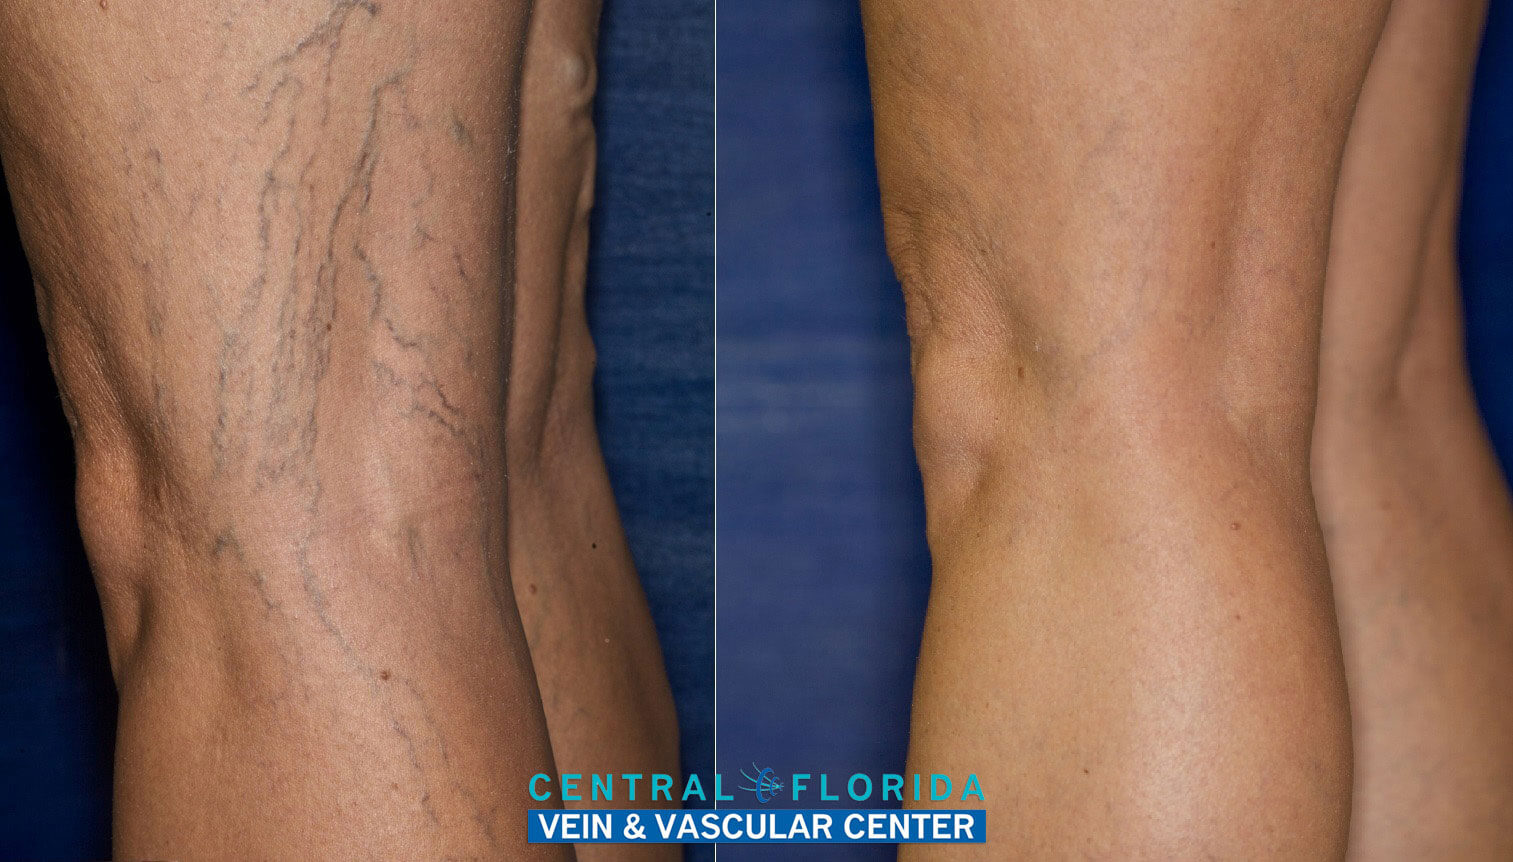 Before and After of Varicose Vein Treatment for Left Lateral Knee at Central Florida Vein & Vascular Center